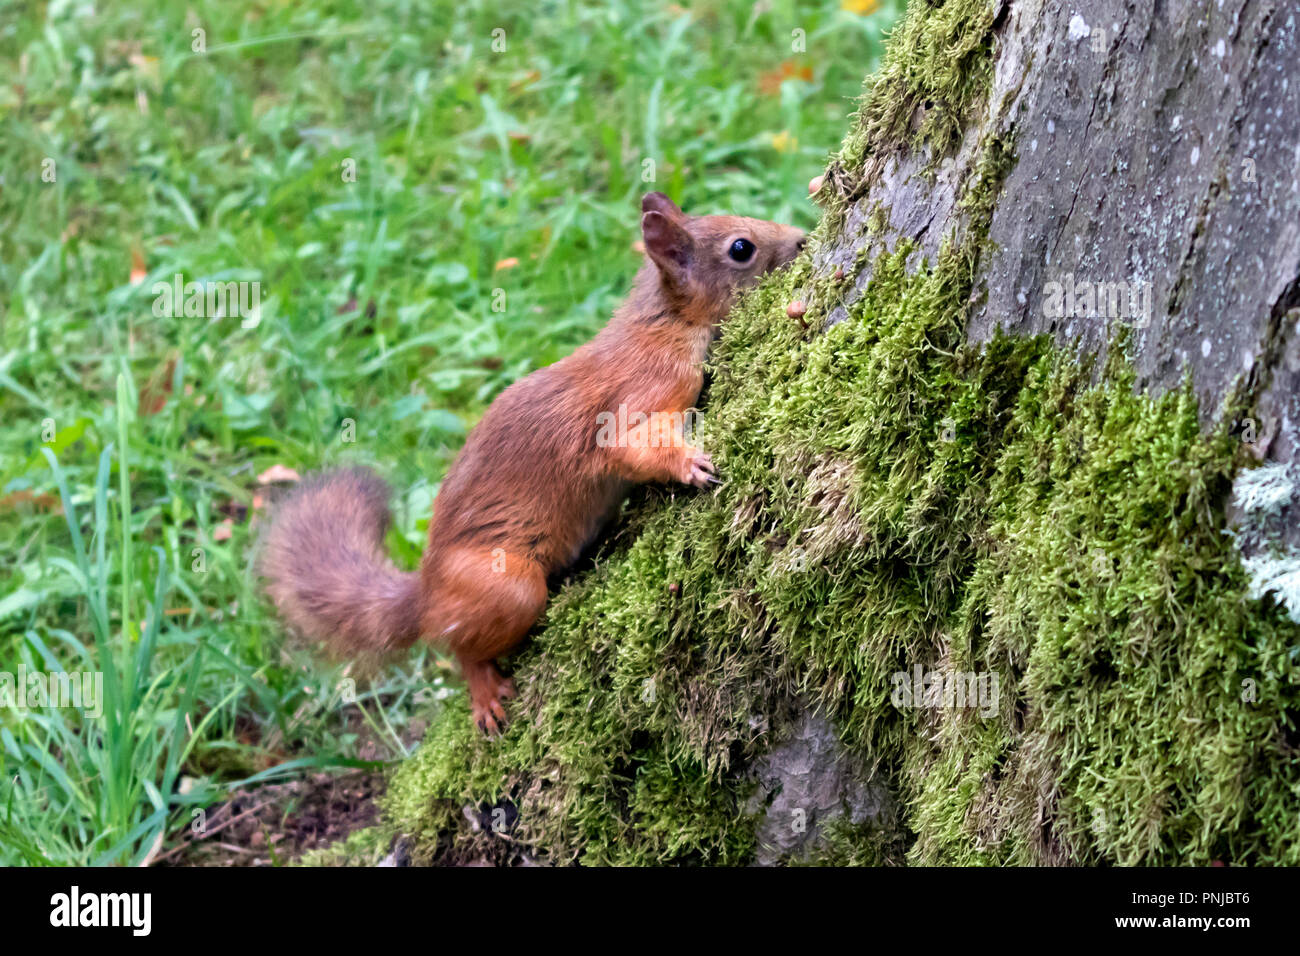 Cute red squirrel with fluffy tail sitting on a large old trunk overgrown with green moss - Stock Image